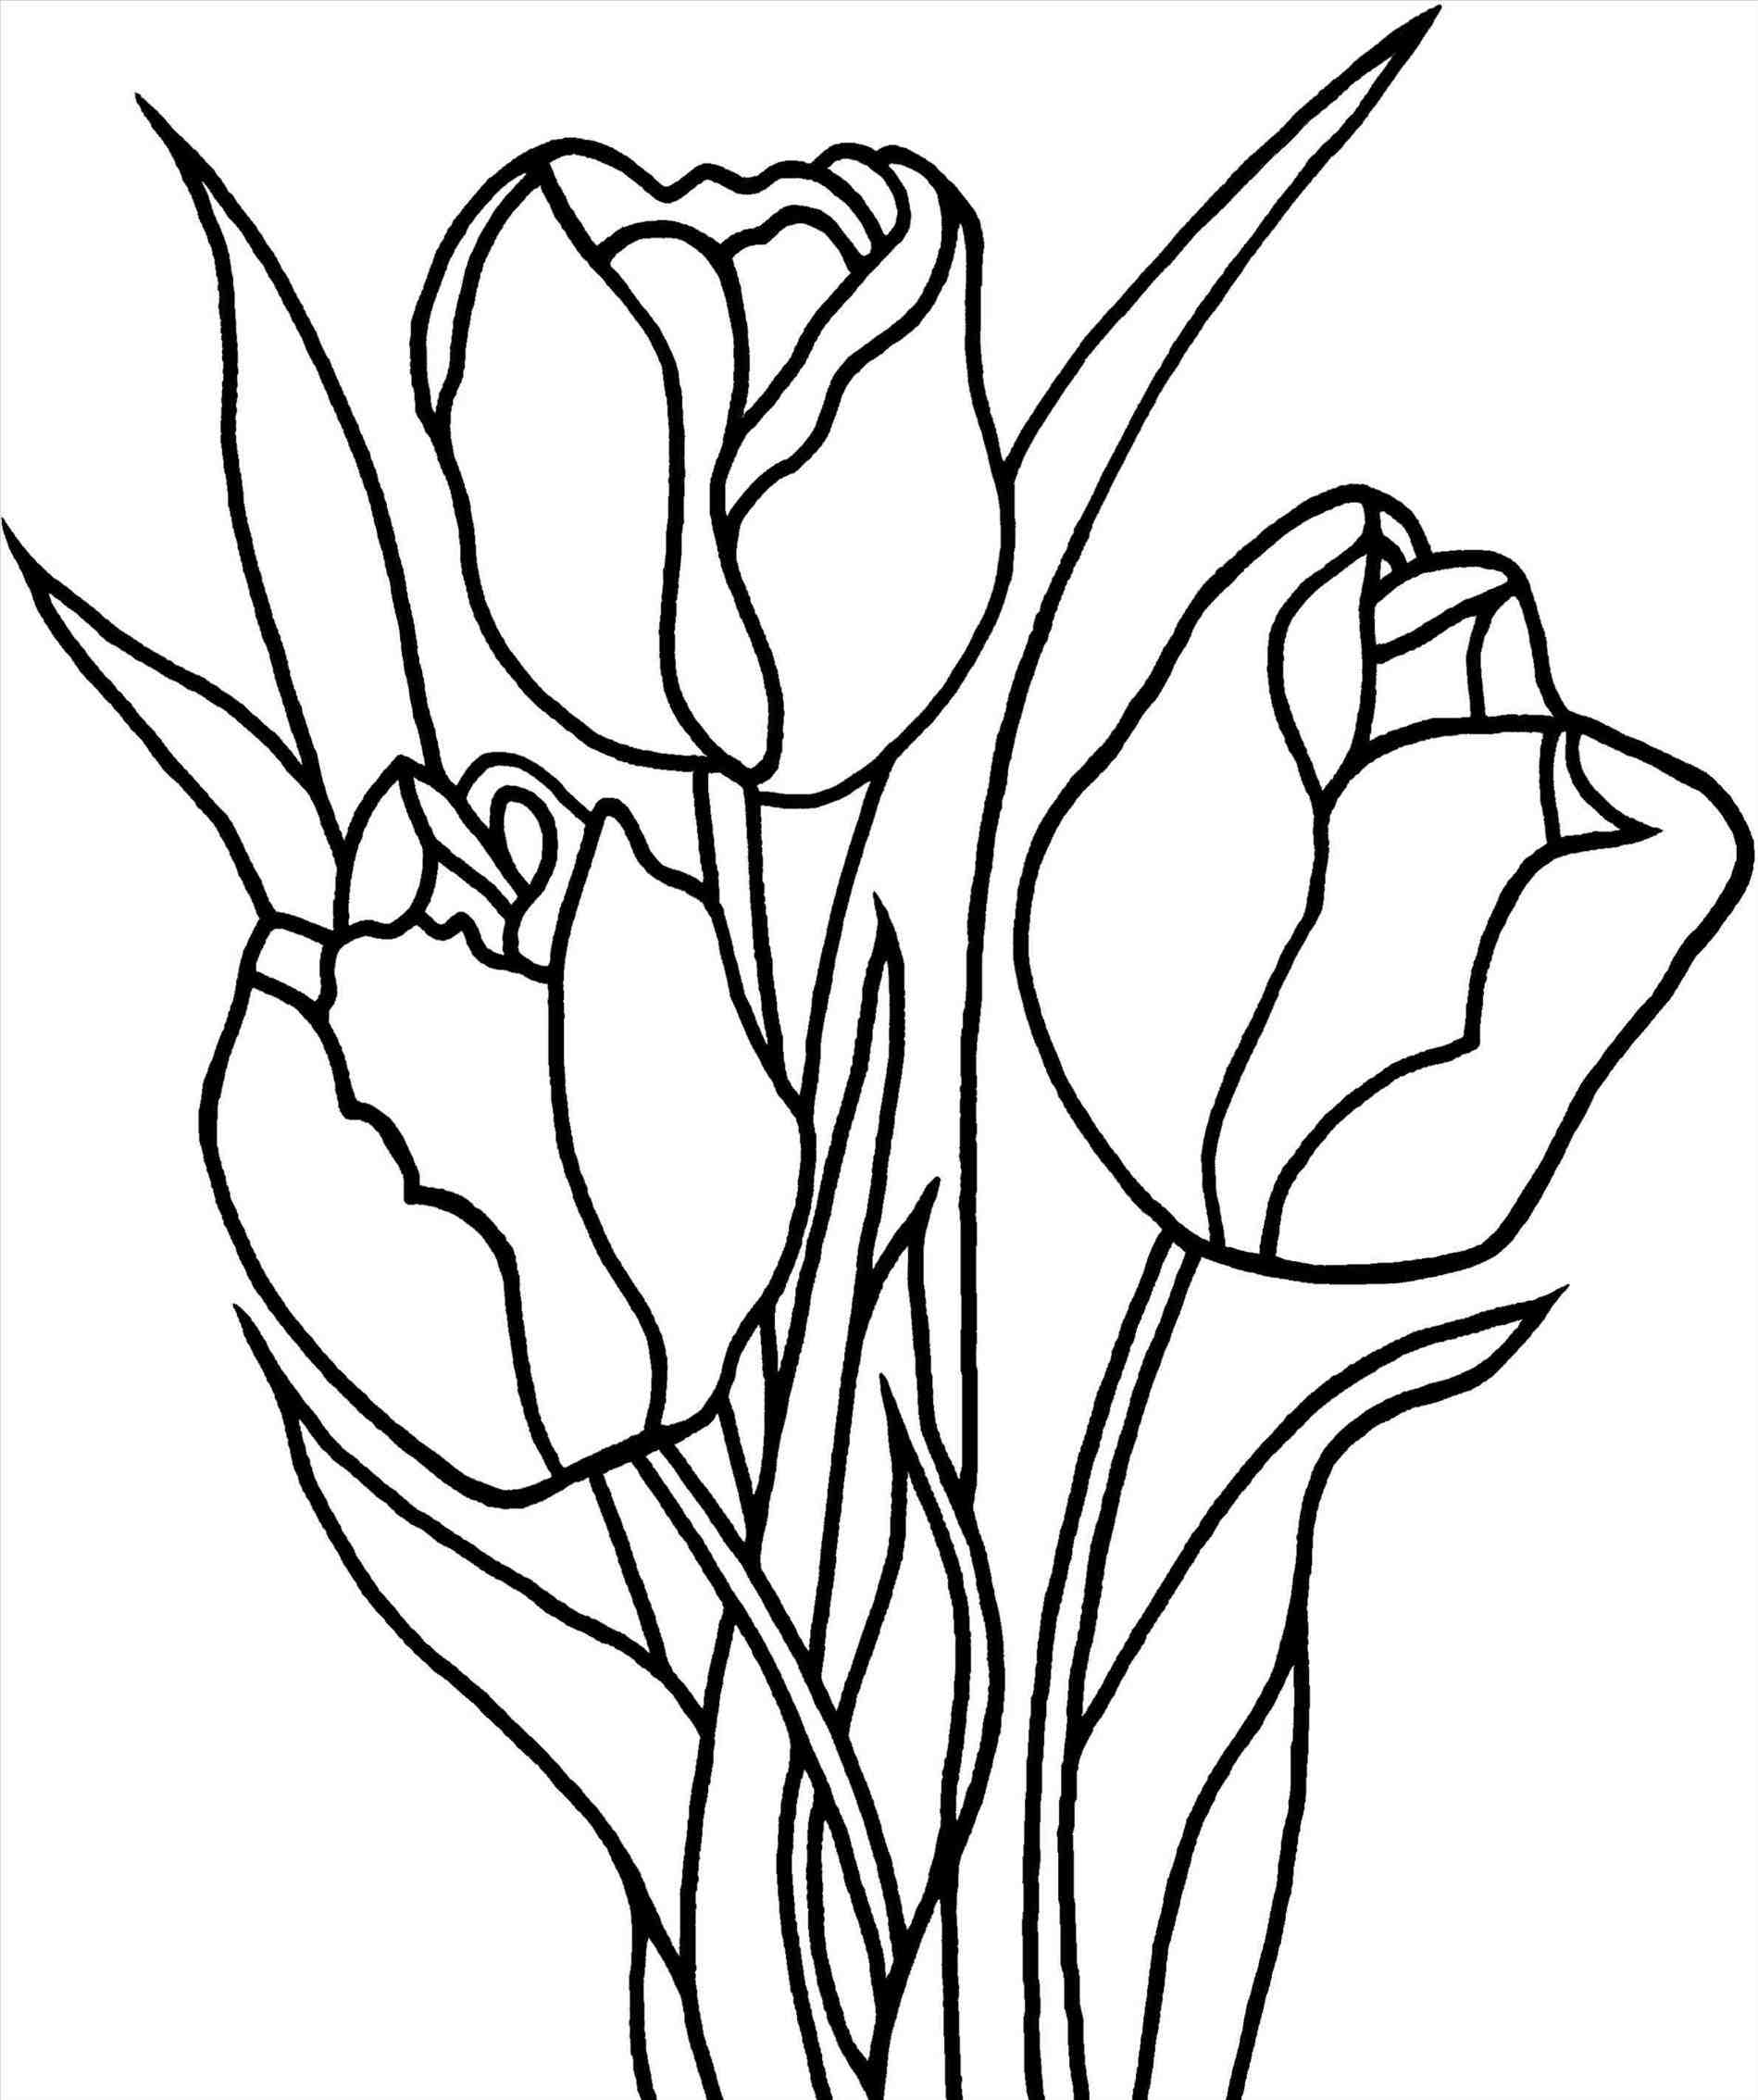 easy tulip drawing how to draw a tulip drawingforallnet drawing tulip easy